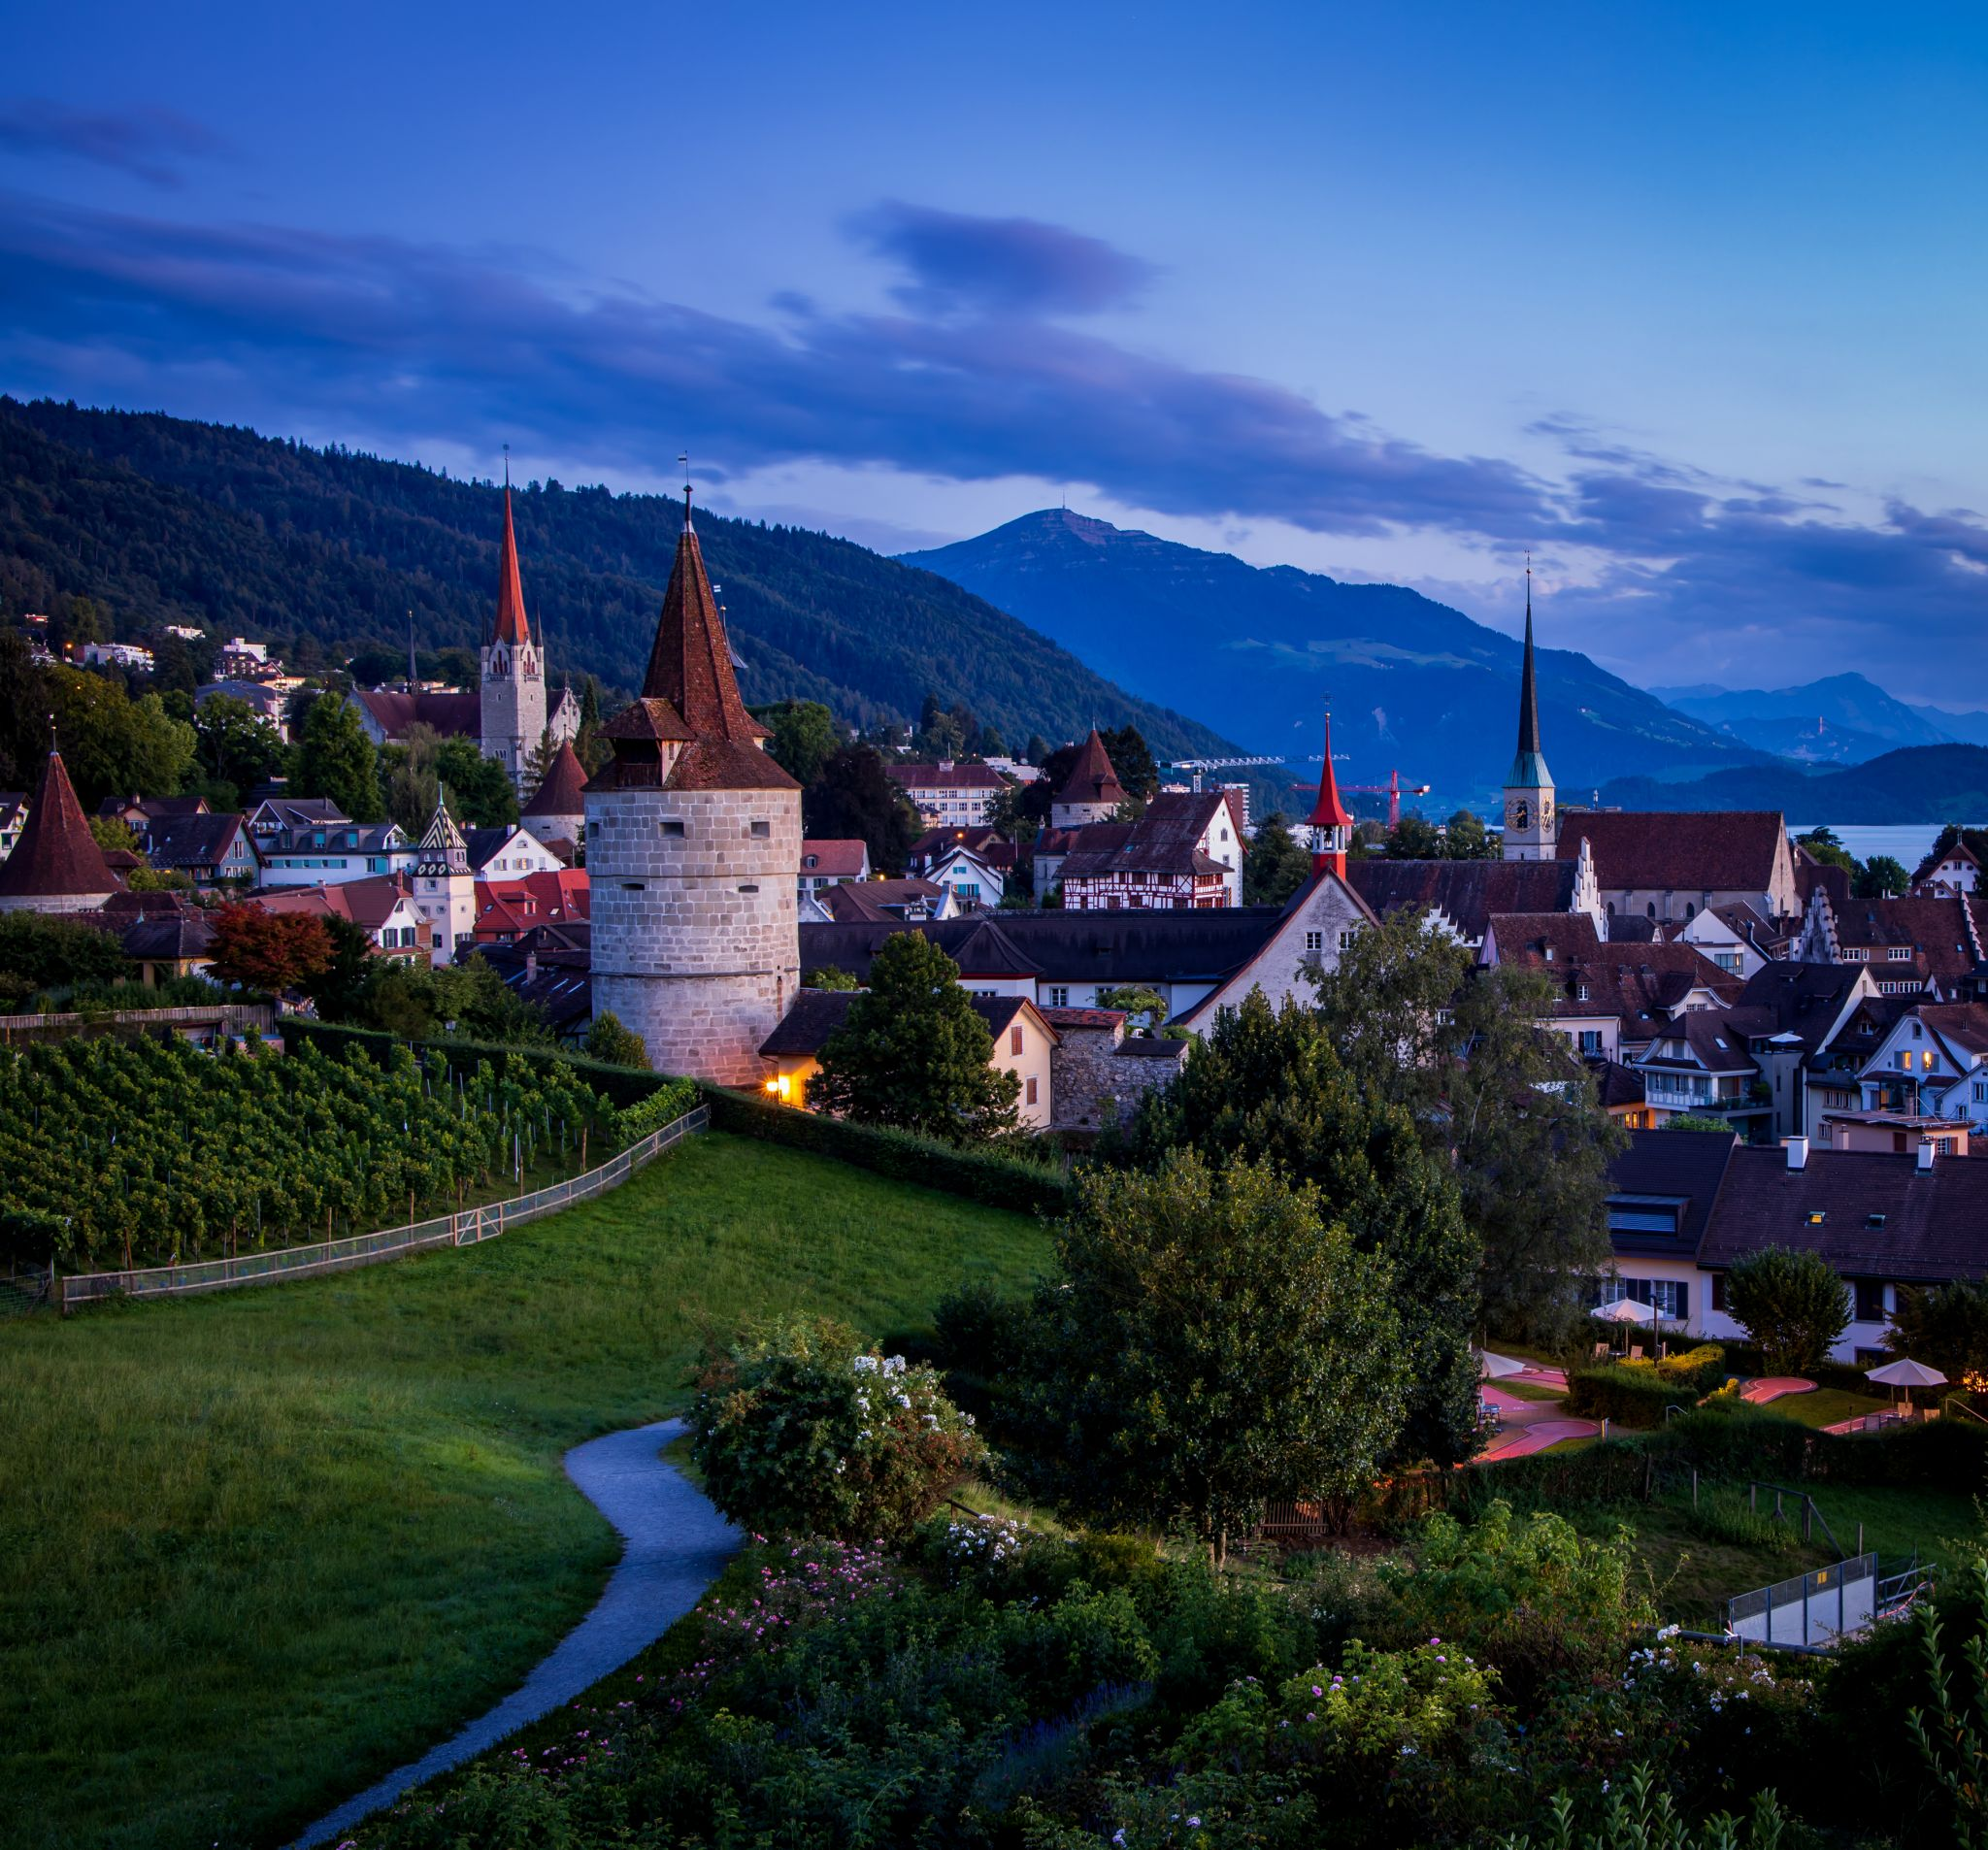 The Medieval town of Zug, Switzerland